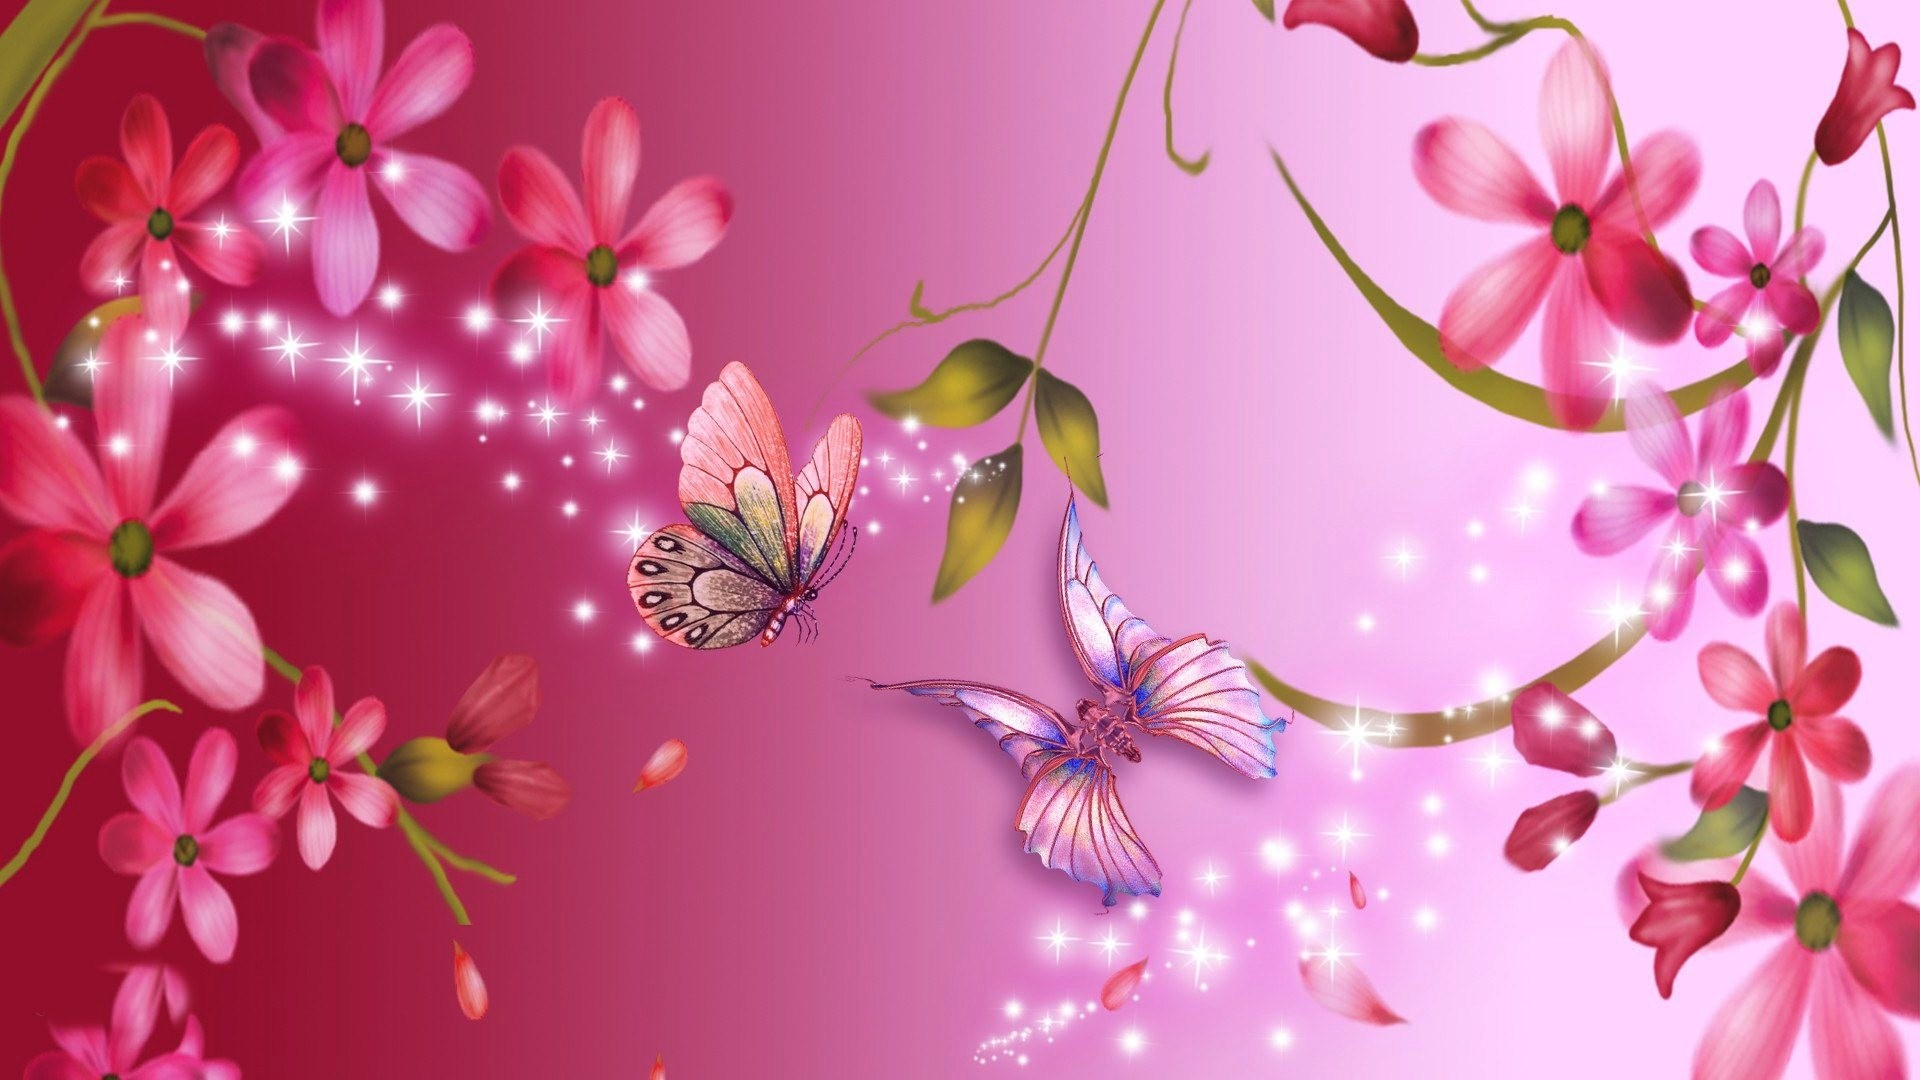 Pink flower wallpaper background 55 images 1920x1080 pink flower wallpapers 1080p mightylinksfo